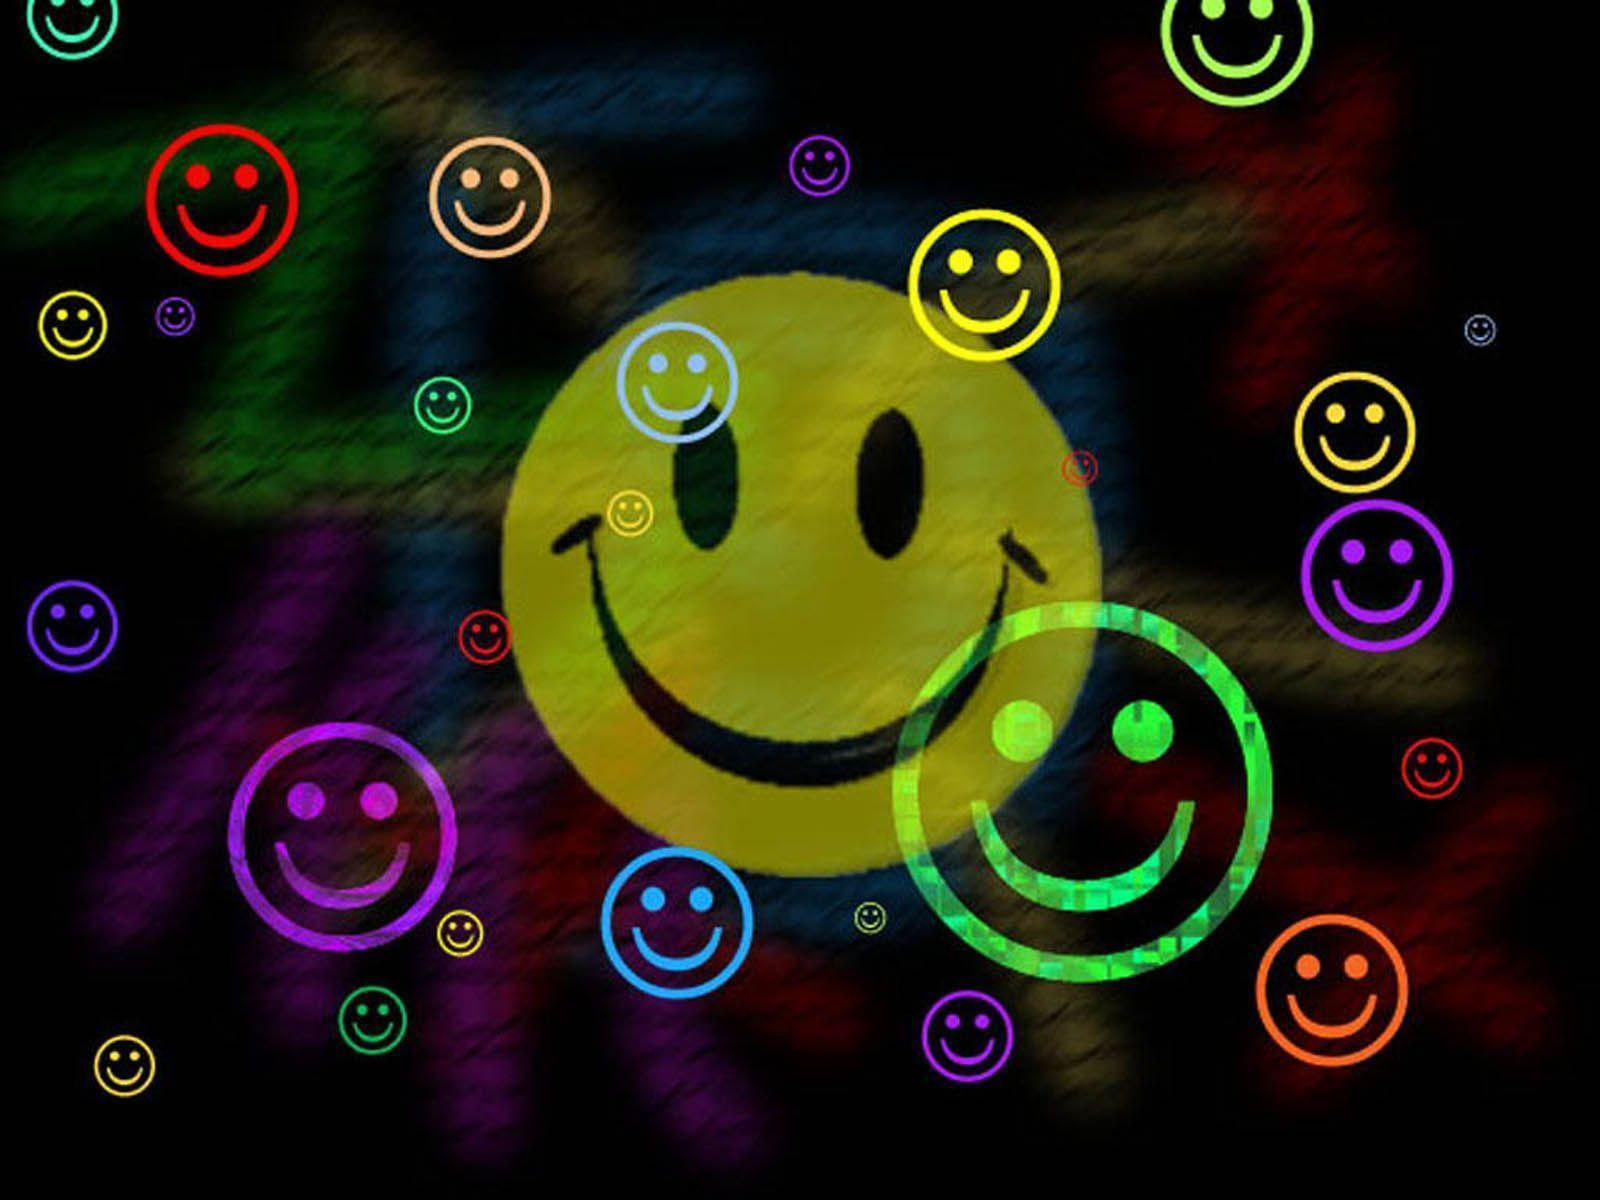 Smiley Faces Backgrounds 1600x1200